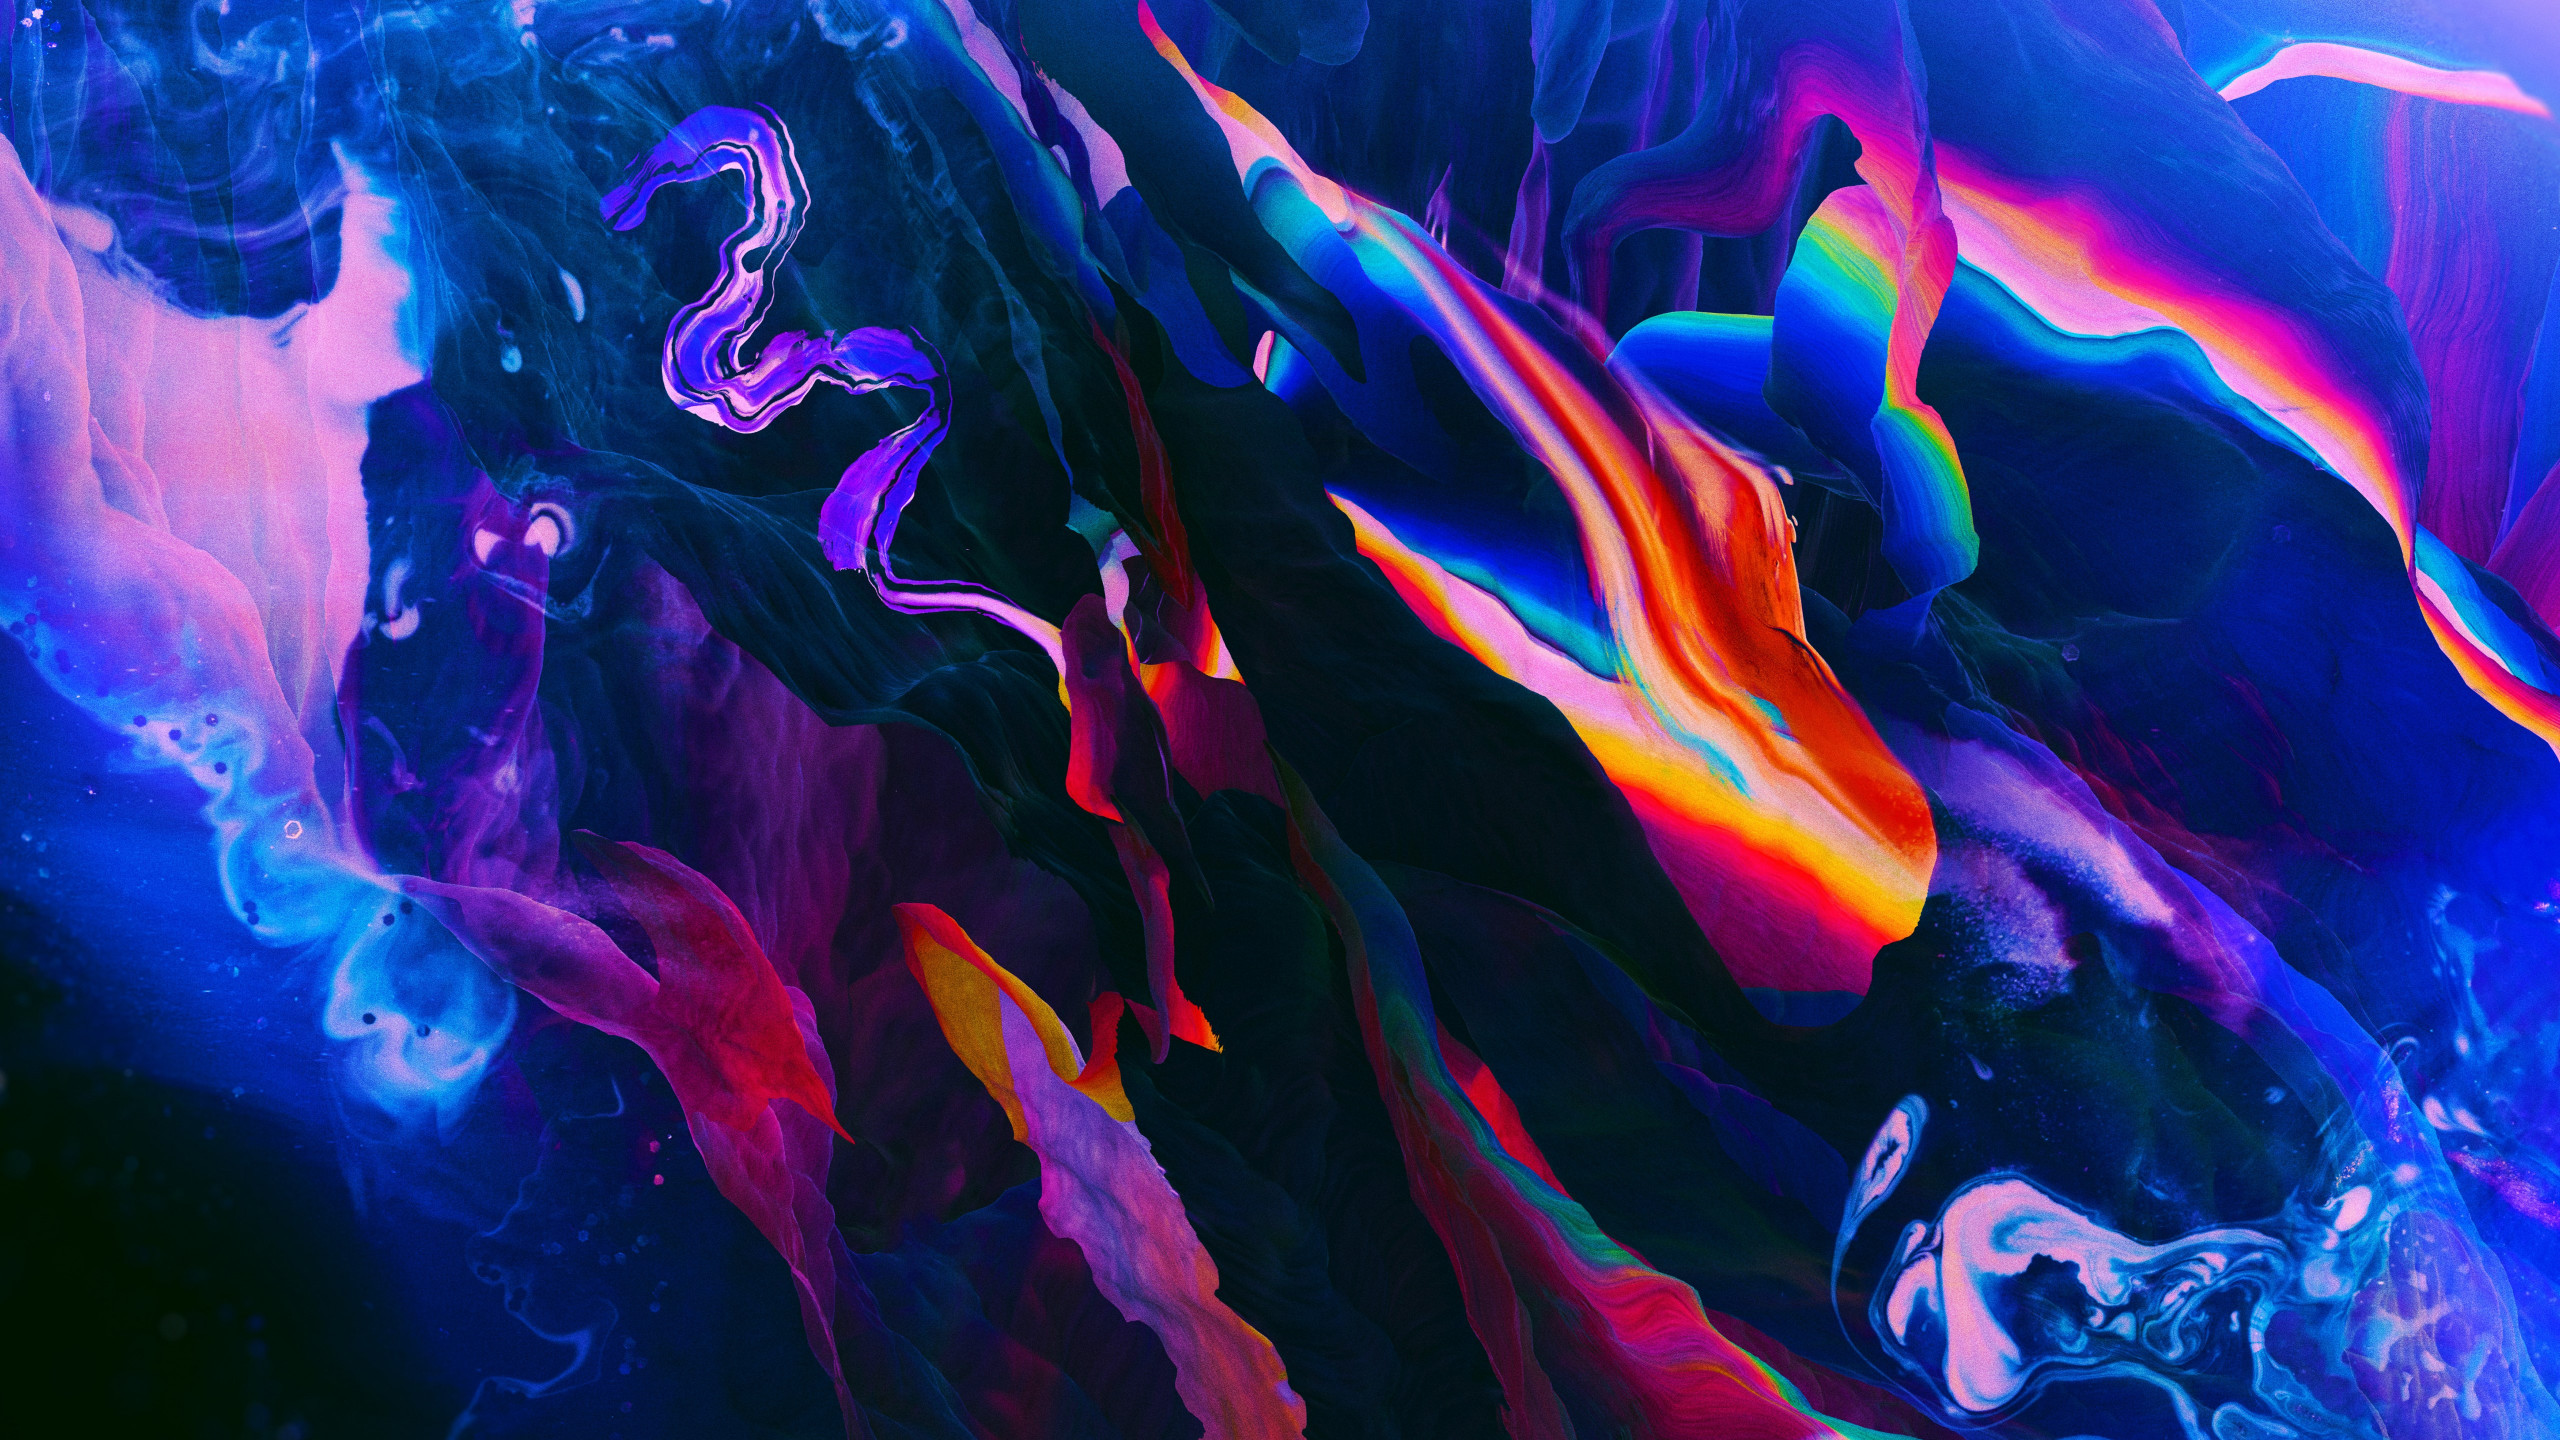 Download Wallpaper Abstract Colorful 2560x1440